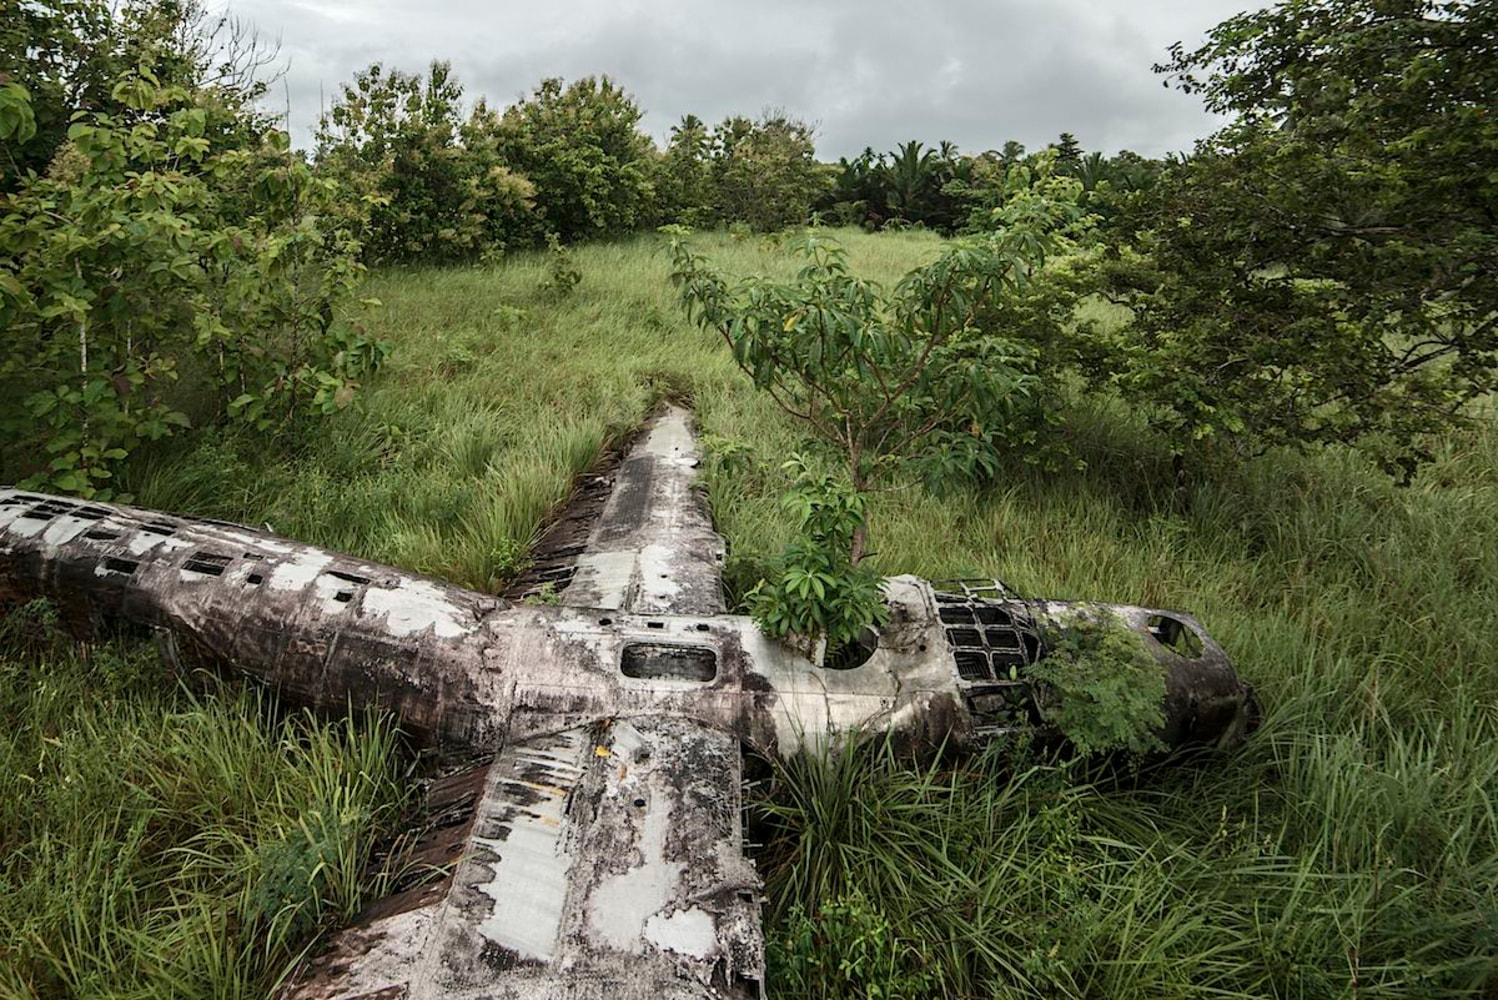 Eerie Plane Wrecks Contain Forgotten Stories Of Survival